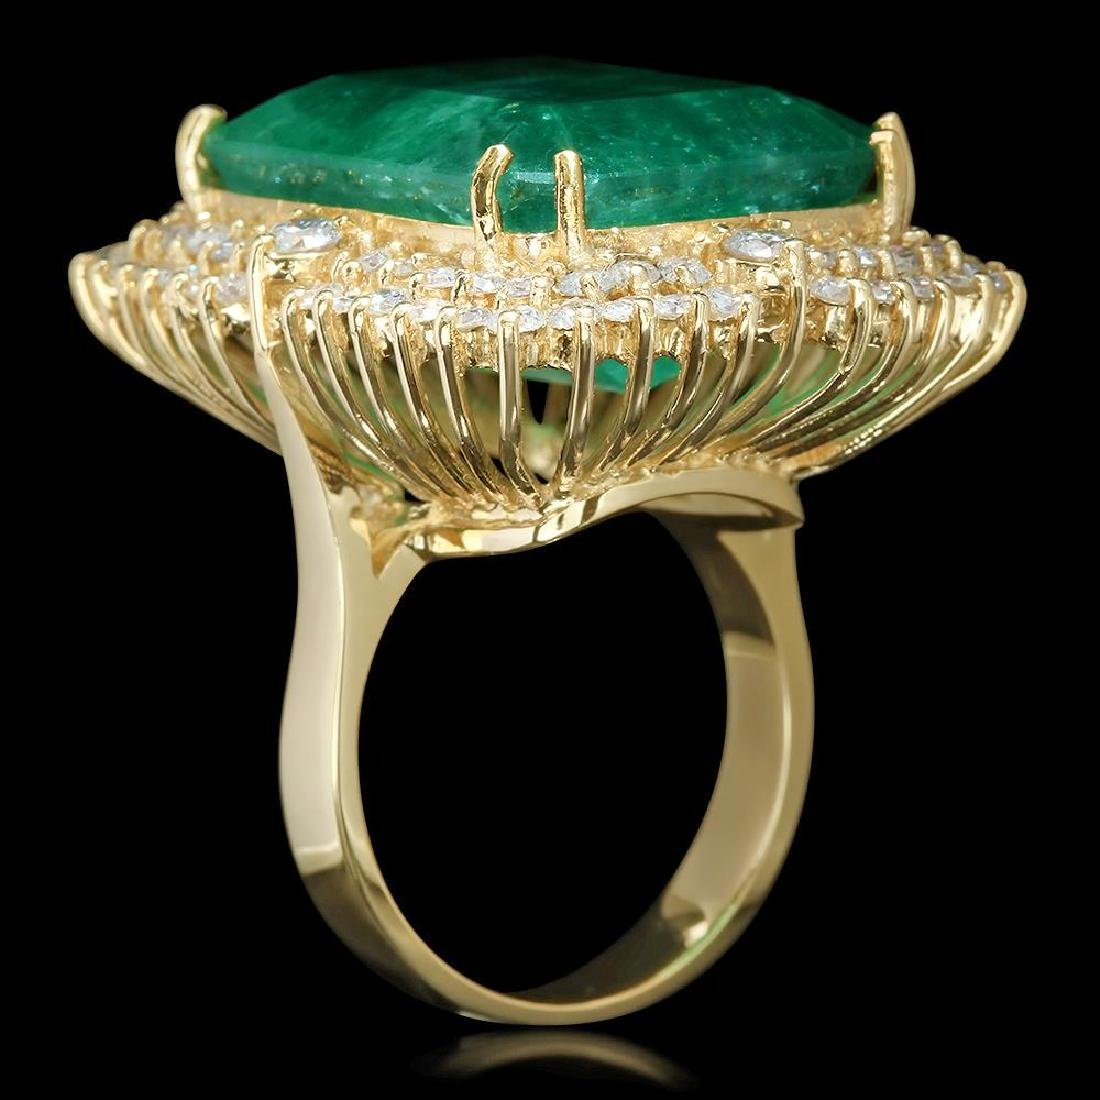 14K Gold 29.27 Emerald 2.52 Diamond Ring - 2